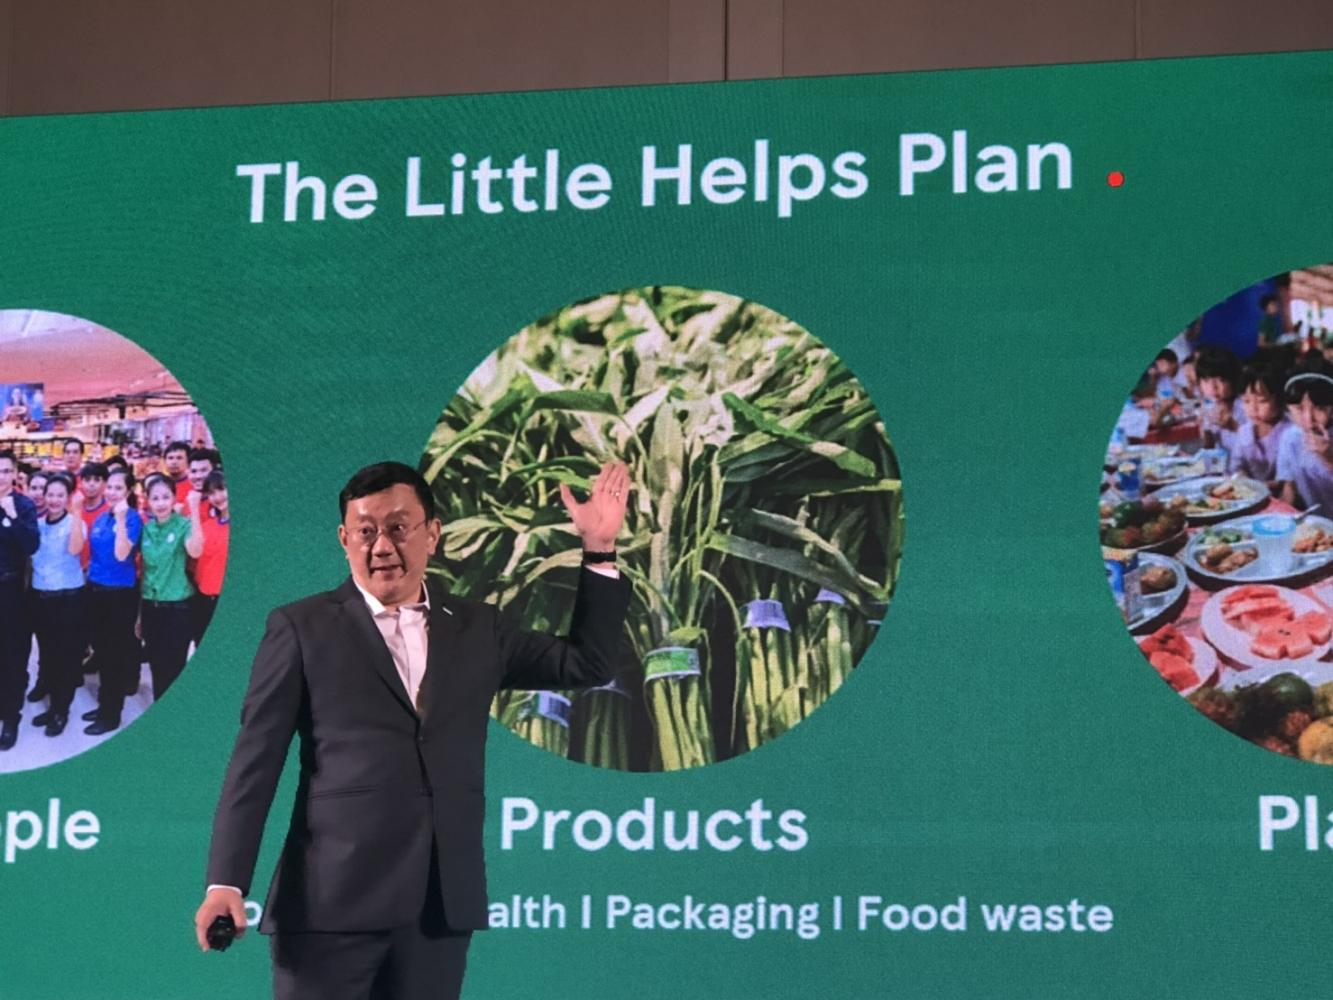 Mr Sompong says the sustainability scheme, known as 'The Little Helps Plan', applies to all Tesco businesses in Thailand. Pitsinee Jitpleecheep